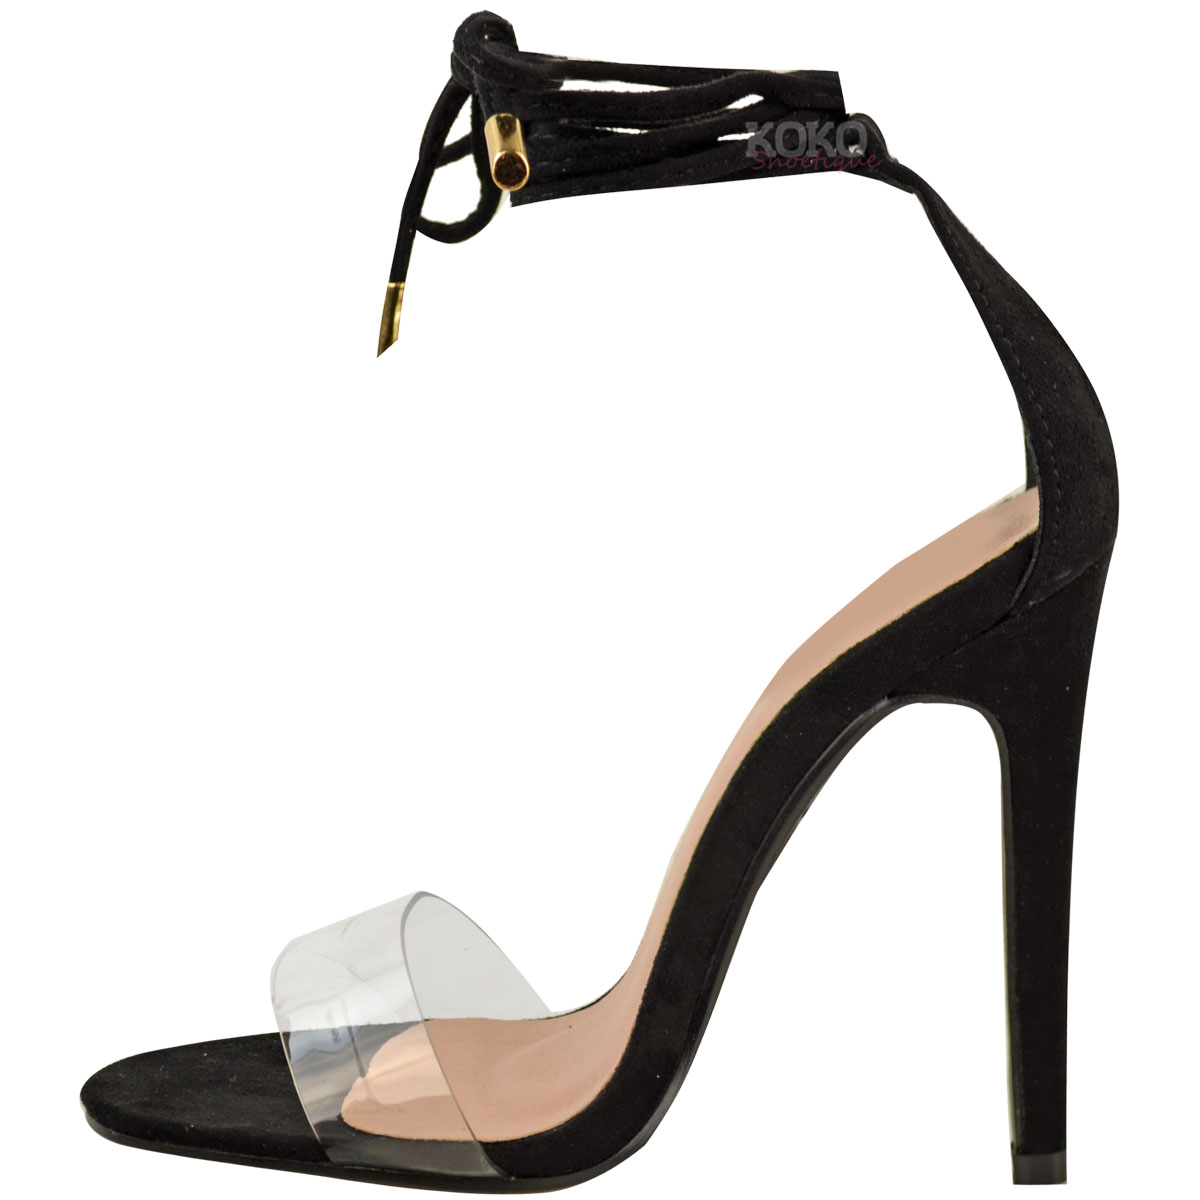 51c50908e33243 Details about Womens Ladies High Heel Barely There Clear Perspex Ankle  Strappy Sandals Size UK